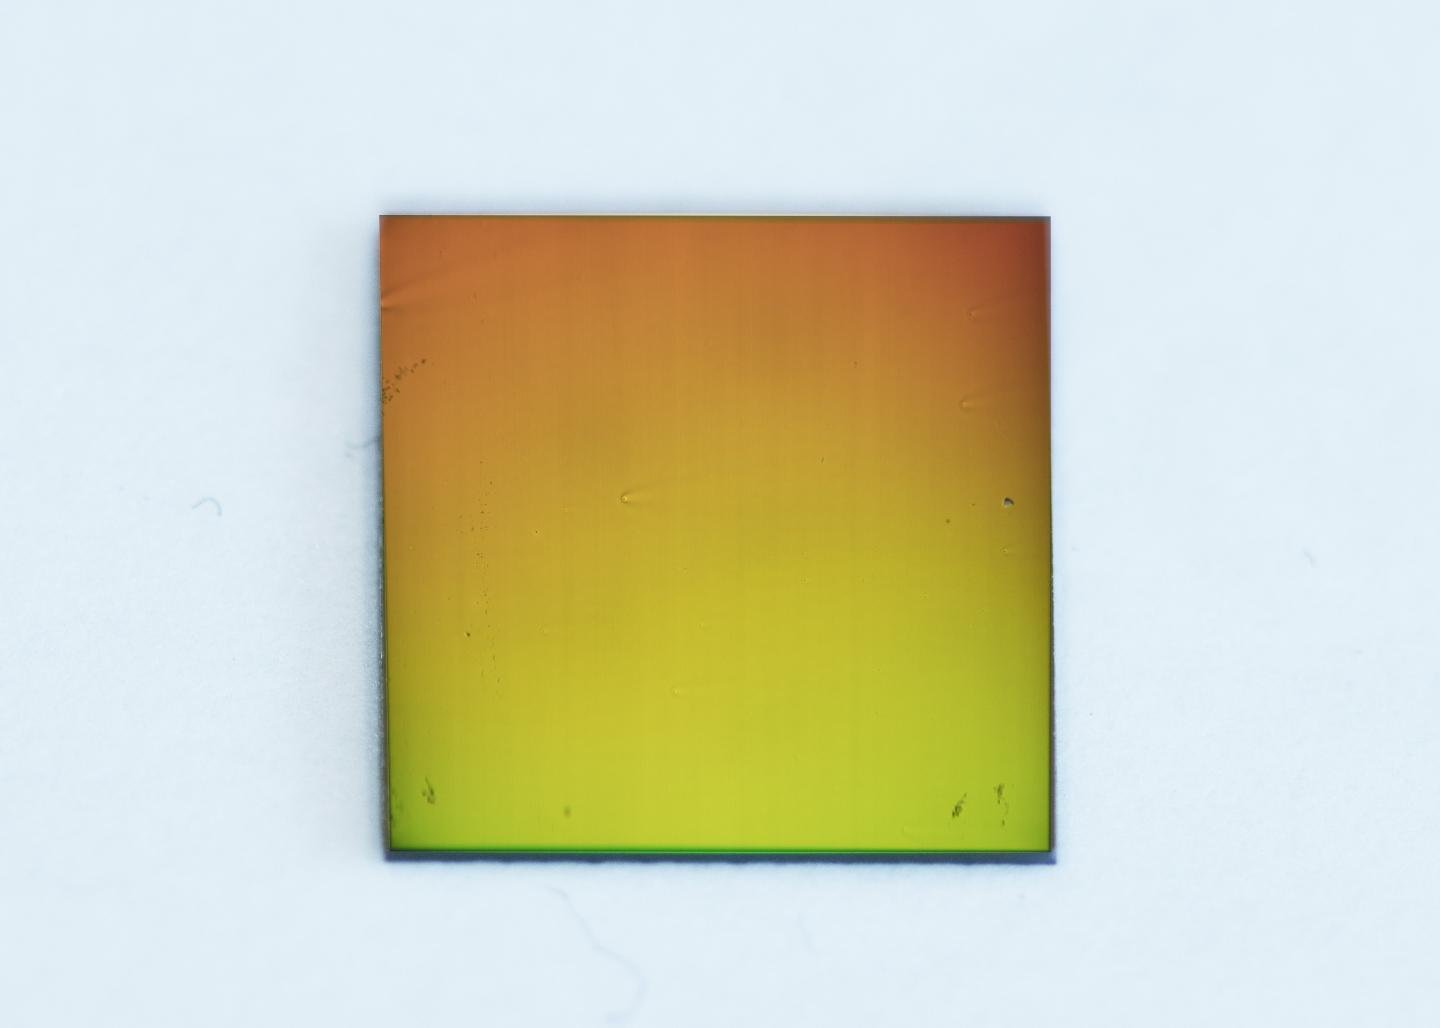 The biosensor (pictured) is a thin glass slide compatible with traditional microscopes. Photo: EPFL